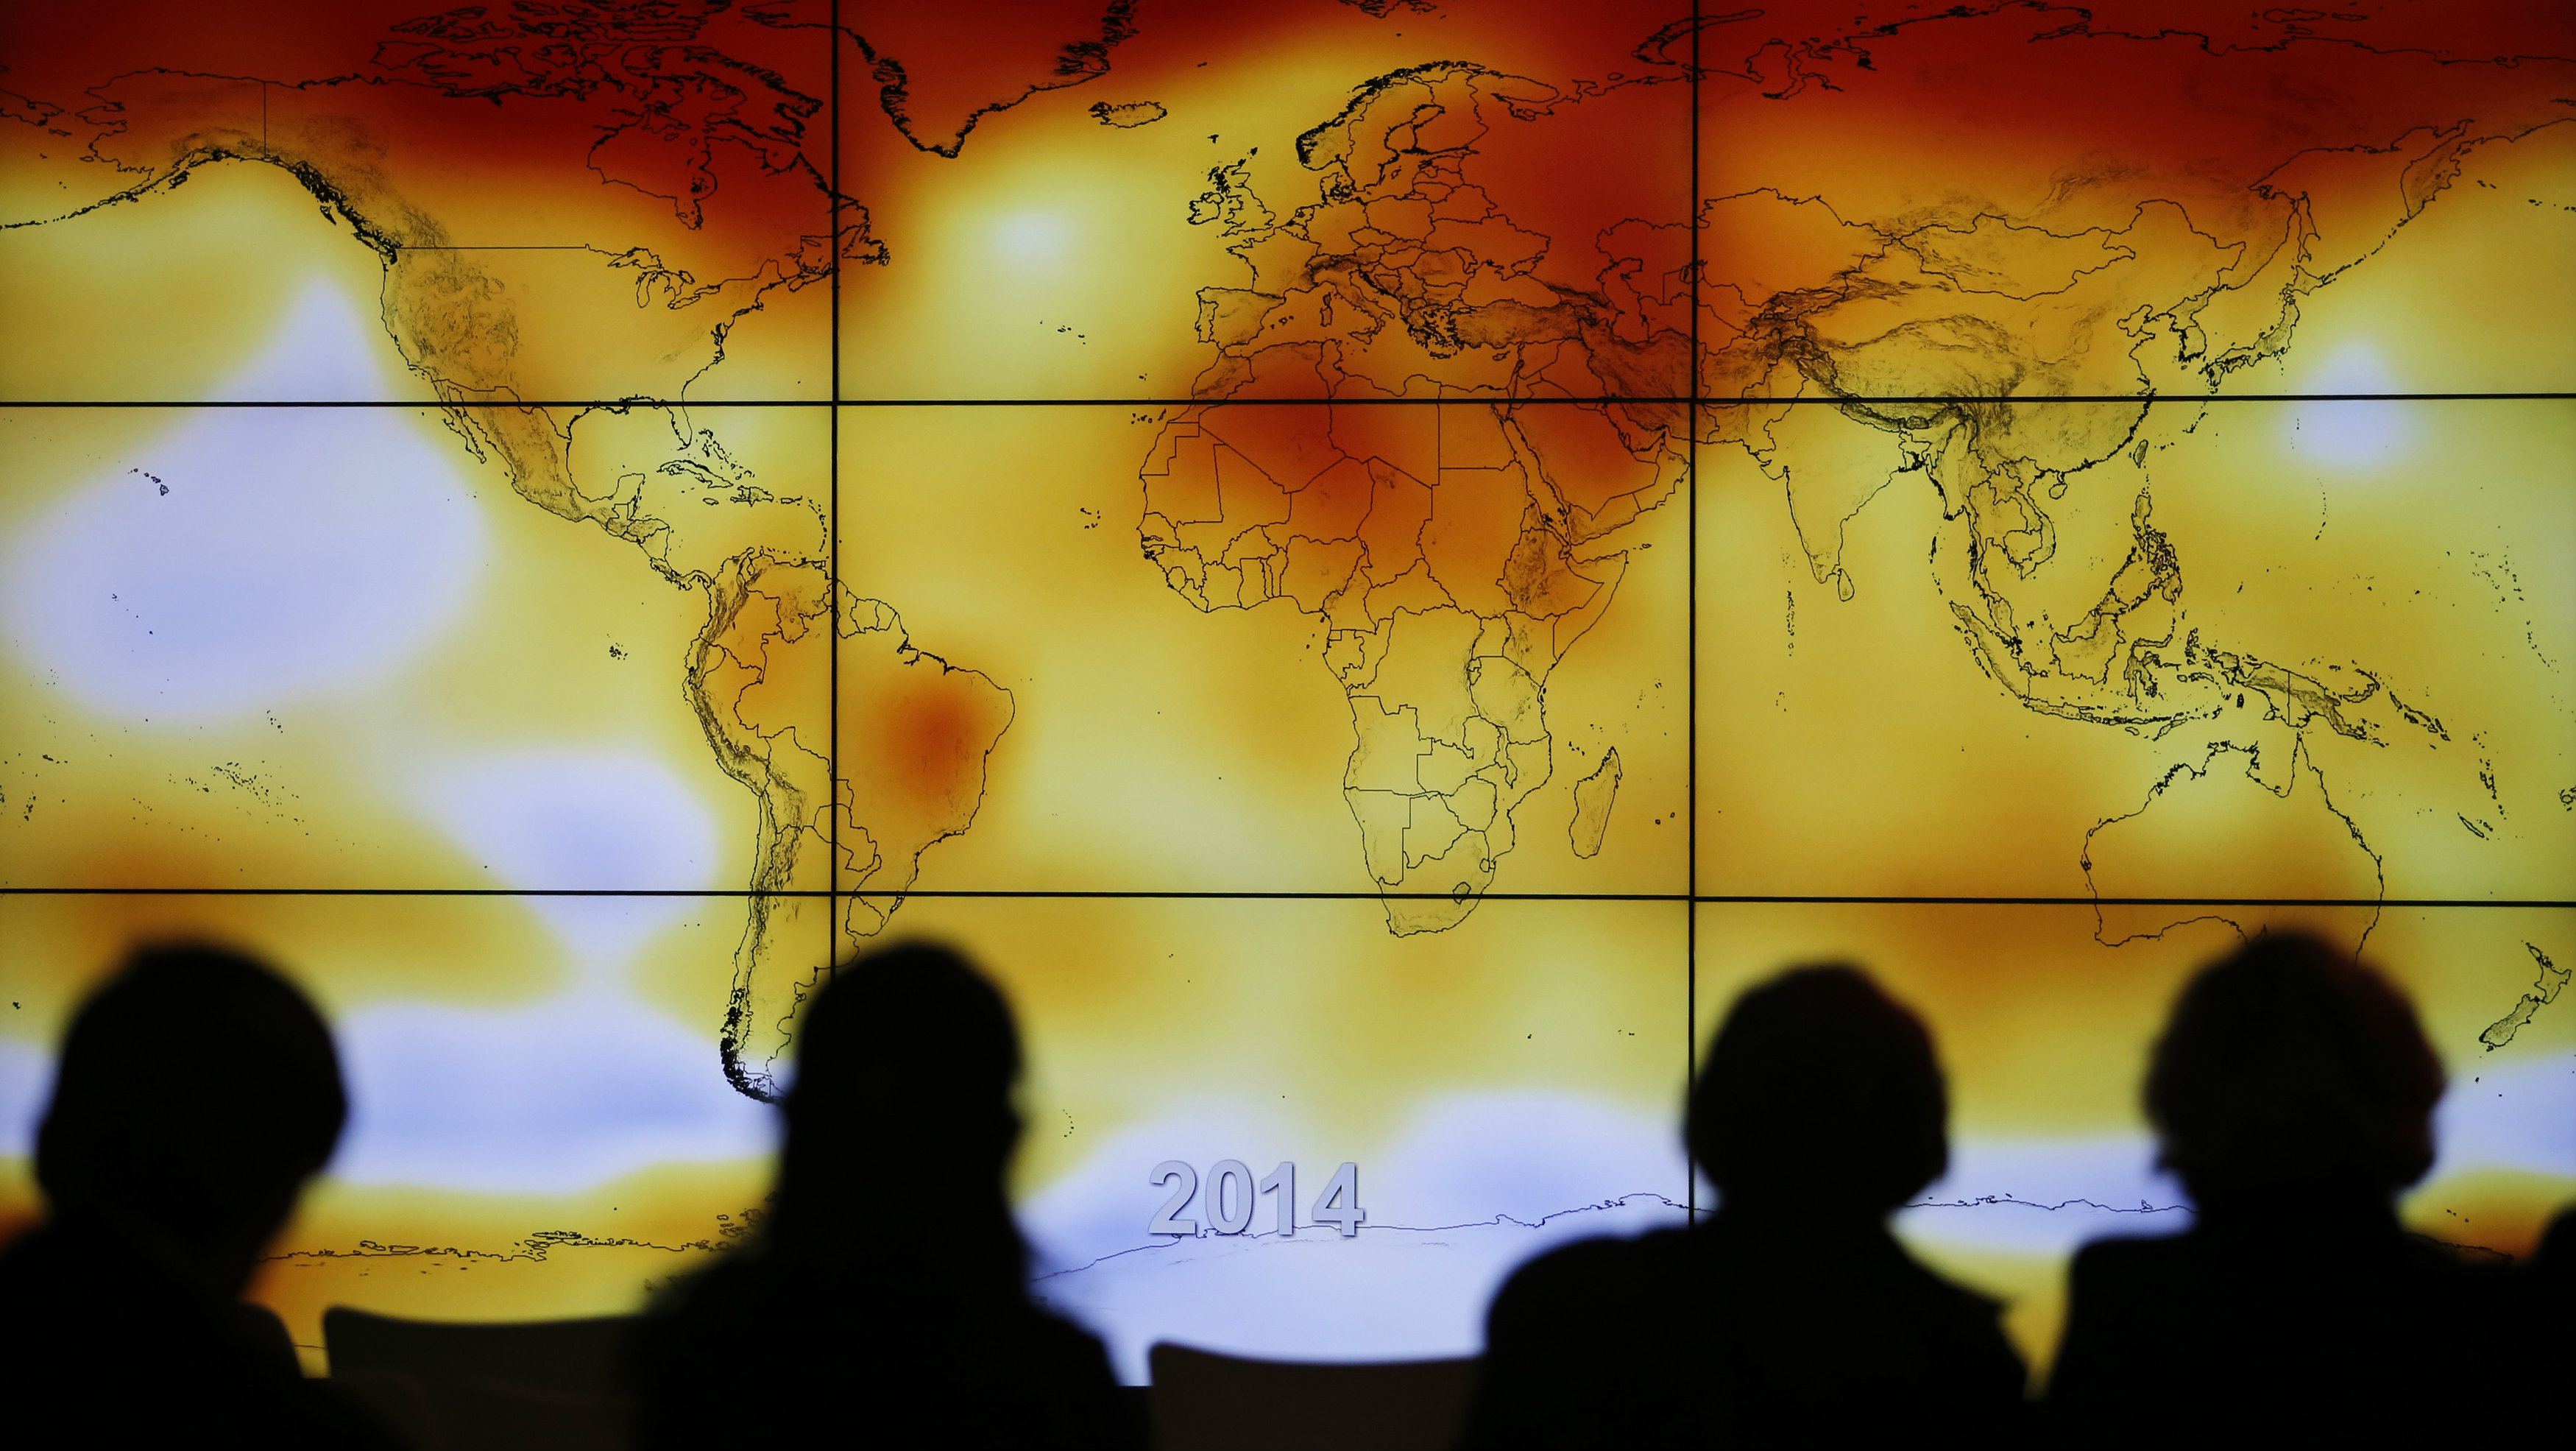 Participants are seen in silhouette as they look at a screen showing a world map with climate anomalies during the World Climate Change Conference 2015 (COP21) at Le Bourget, near Paris, France, December 8, 2015. REUTERS/Stephane Mahe TPX IMAGES OF THE DAY